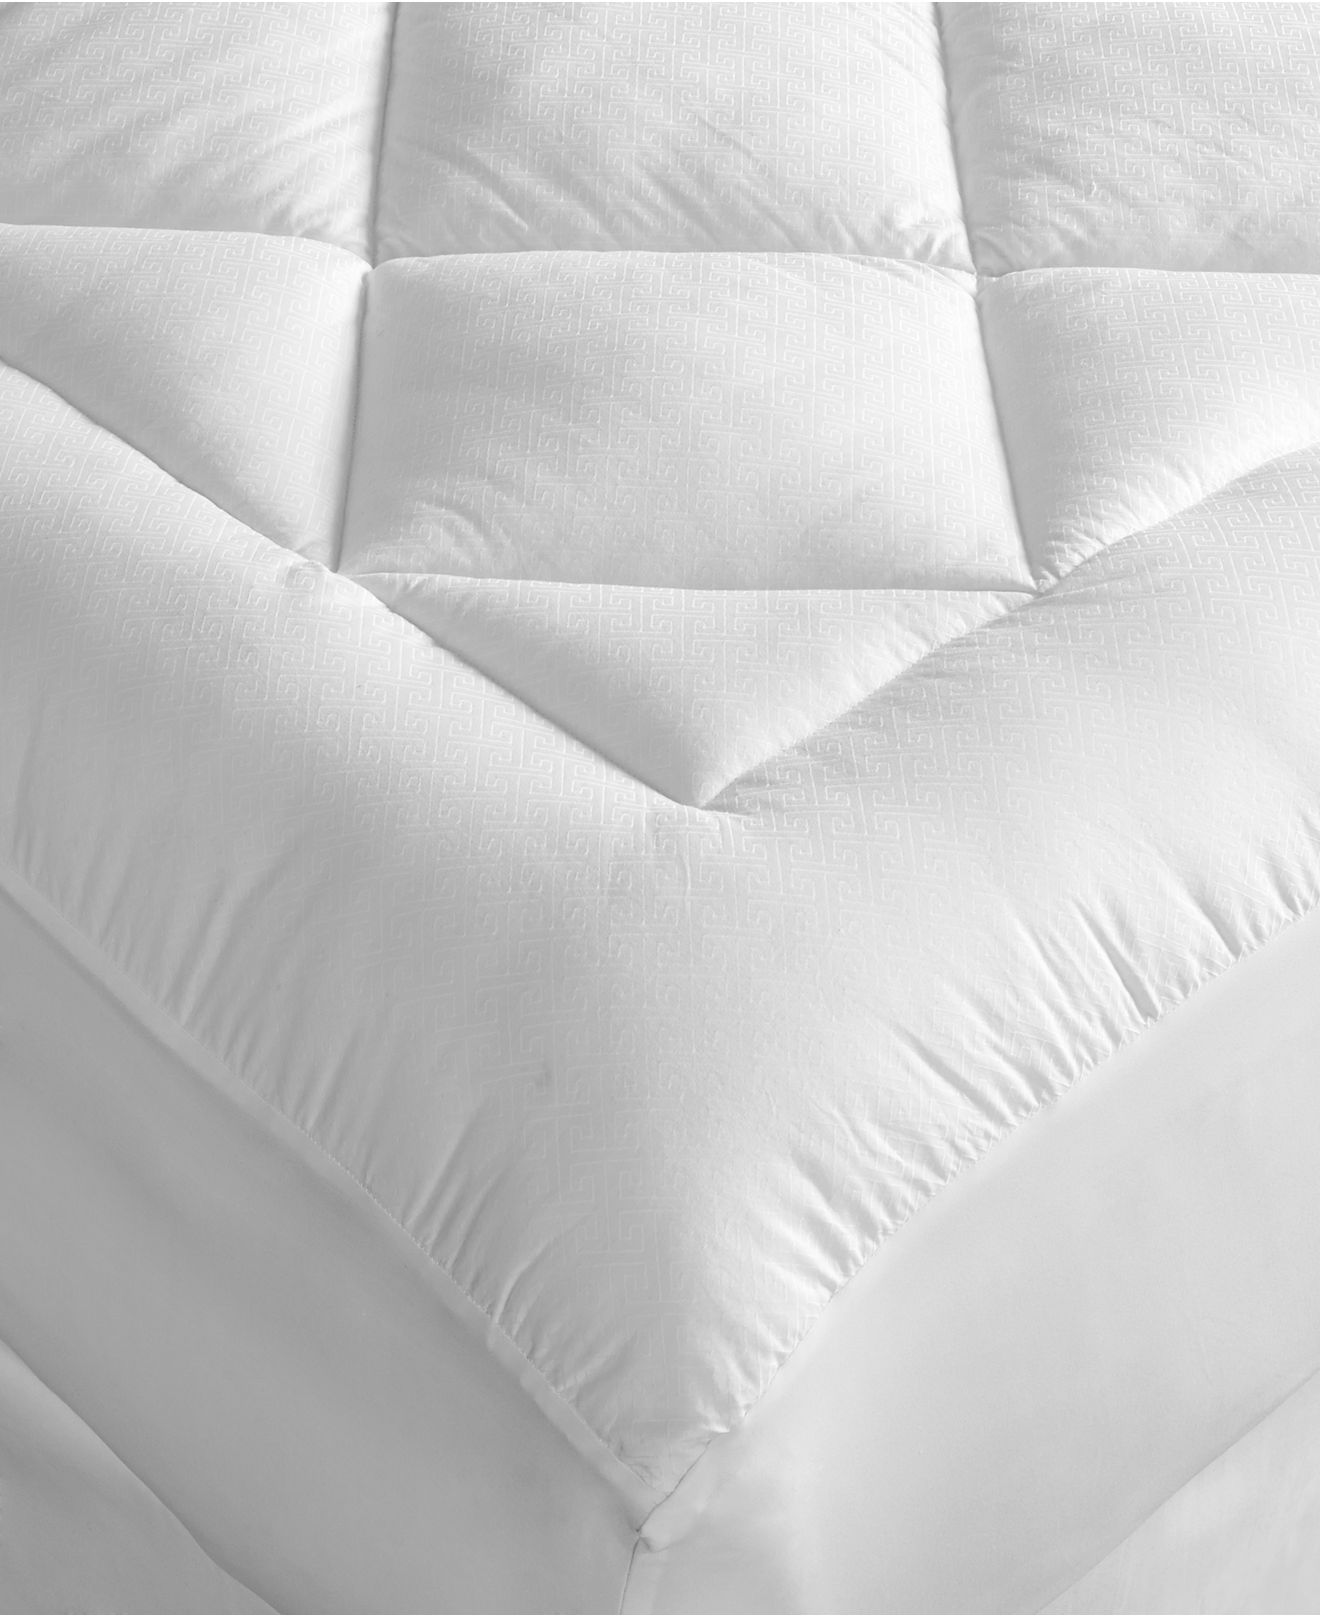 Hotel collection finest mattress pads, hypoallergenic fiber fill ...